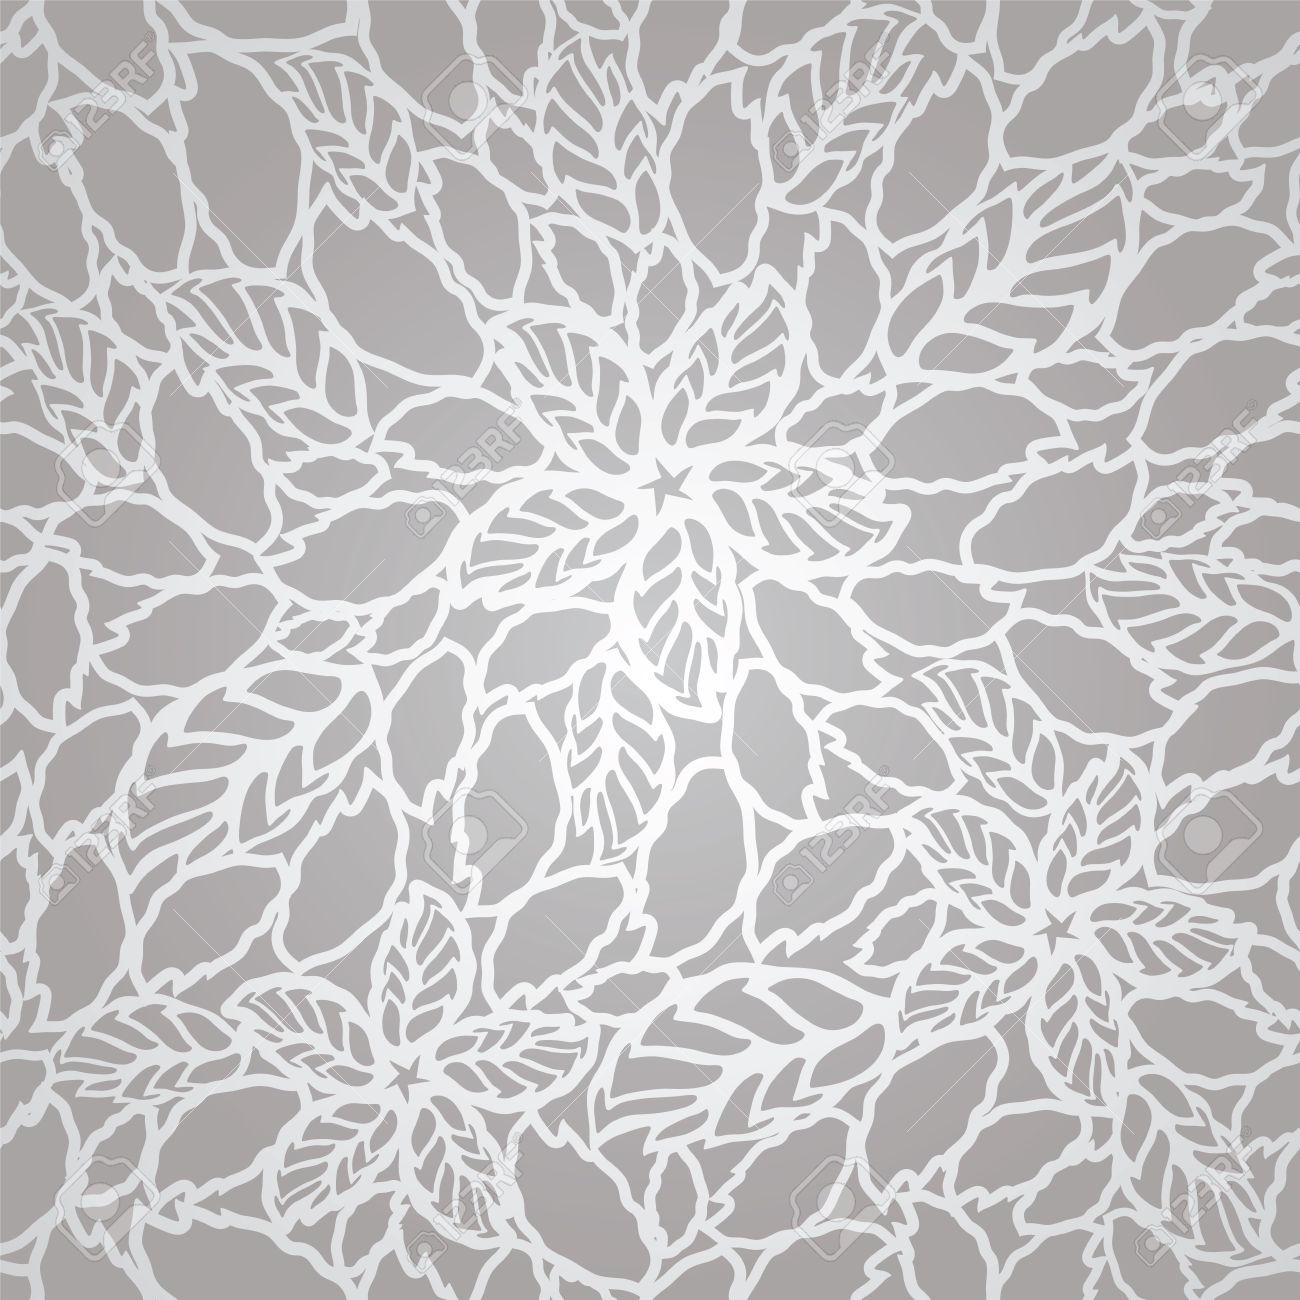 Seamless silver leaves and flowers lace wallpaper pattern this seamless silver leaves and flowers lace wallpaper pattern this image is a vector illustration mightylinksfo